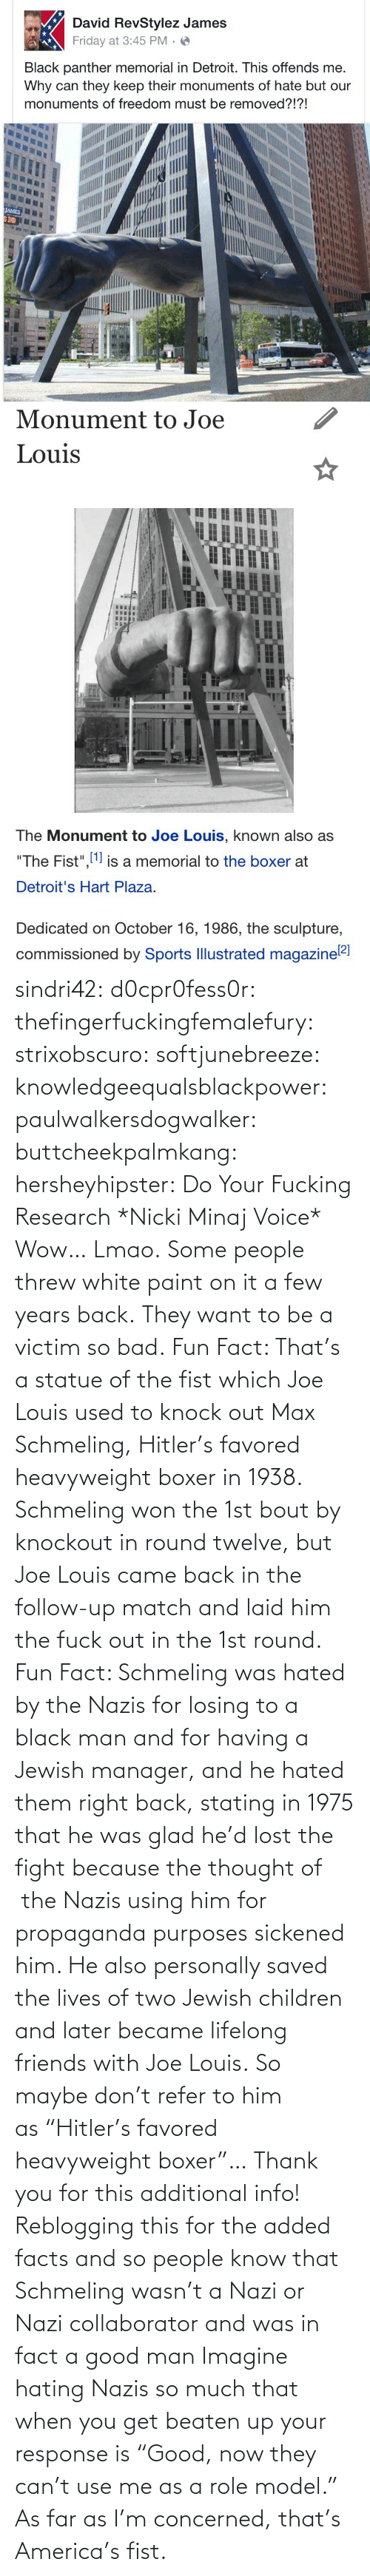 "Research: sindri42:  d0cpr0fess0r:  thefingerfuckingfemalefury:  strixobscuro:  softjunebreeze:  knowledgeequalsblackpower:  paulwalkersdogwalker:   buttcheekpalmkang:   hersheyhipster:  Do Your Fucking Research *Nicki Minaj Voice*    Wow… Lmao.   Some people threw white paint on it a few years back.   They want to be a victim so bad.  Fun Fact: That's a statue of the fist which Joe Louis used to knock out Max Schmeling, Hitler's favored heavyweight boxer in 1938. Schmeling won the 1st bout by knockout in round twelve, but Joe Louis came back in the follow-up match and laid him the fuck out in the 1st round.  Fun Fact: Schmeling was hated by the Nazis for losing to a black man and for having a Jewish manager, and he hated them right back, stating in 1975 that he was glad he'd lost the fight because the thought of  the Nazis using him for propaganda purposes sickened him. He also personally saved the lives of two Jewish children and later became lifelong friends with Joe Louis. So maybe don't refer to him as ""Hitler's favored heavyweight boxer""…  Thank you for this additional info! Reblogging this for the added facts and so people know that Schmeling wasn't a Nazi or Nazi collaborator and was in fact a good man   Imagine hating Nazis so much that when you get beaten up your response is ""Good, now they can't use me as a role model.""  As far as I'm concerned, that's America's fist."